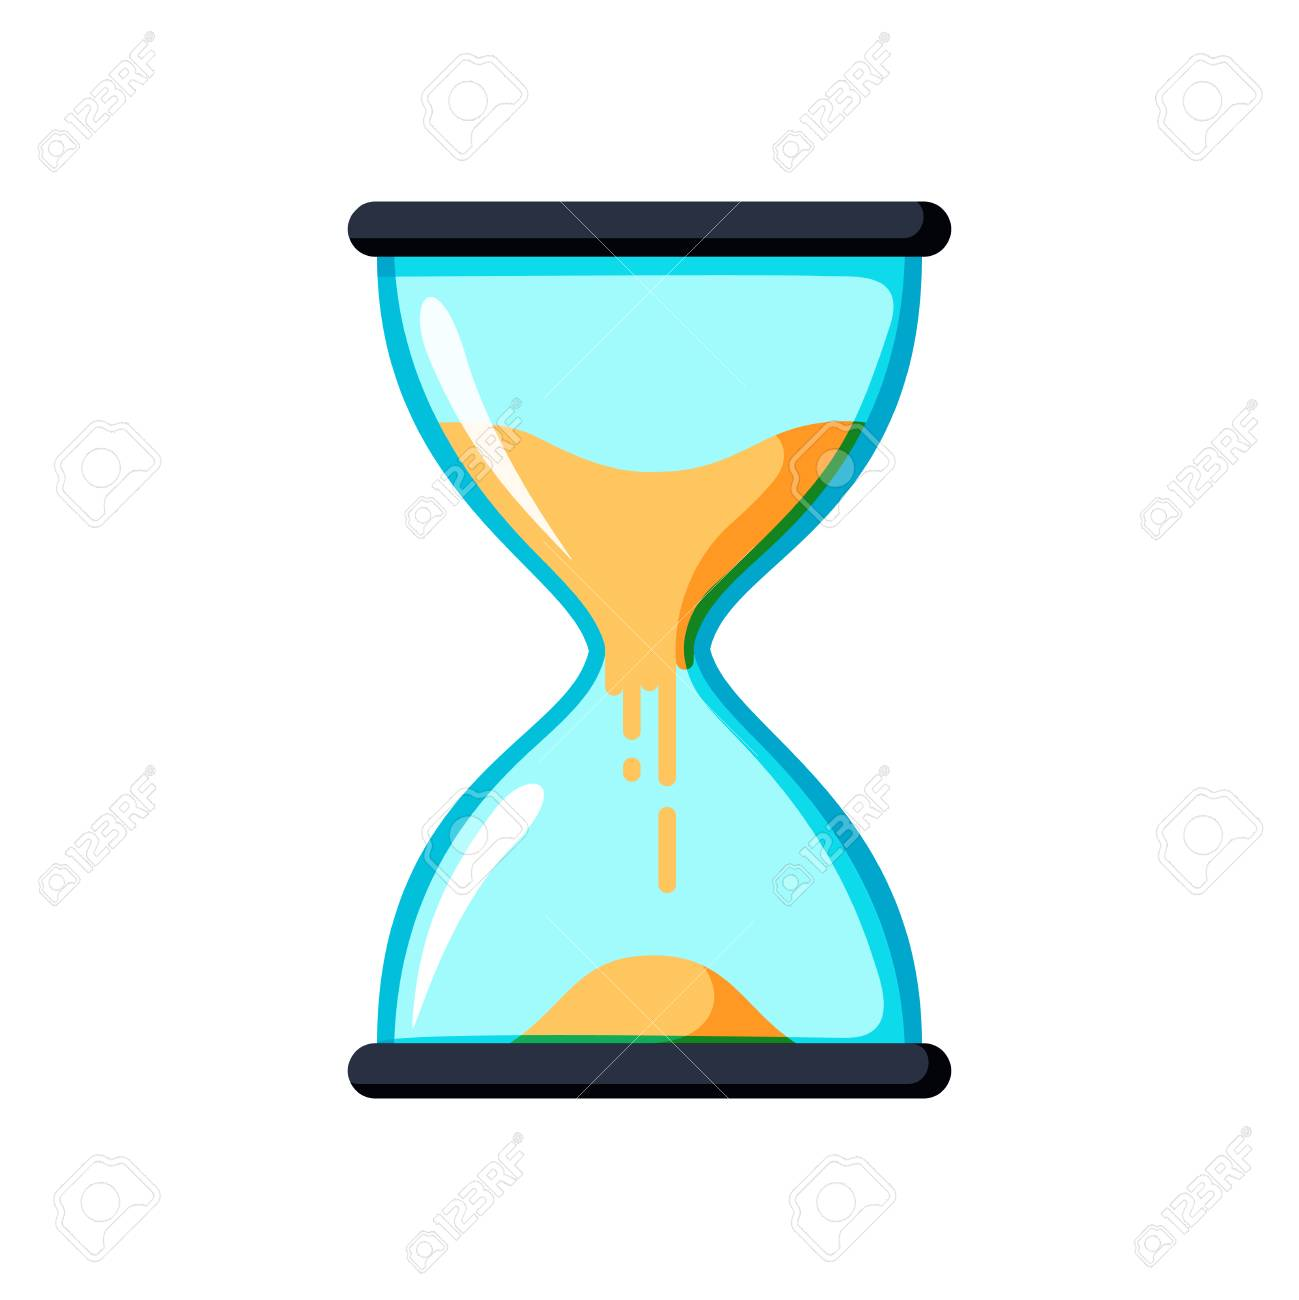 hight resolution of hourglass antique instrument hourglass as time passing concept for business deadline urgency and running